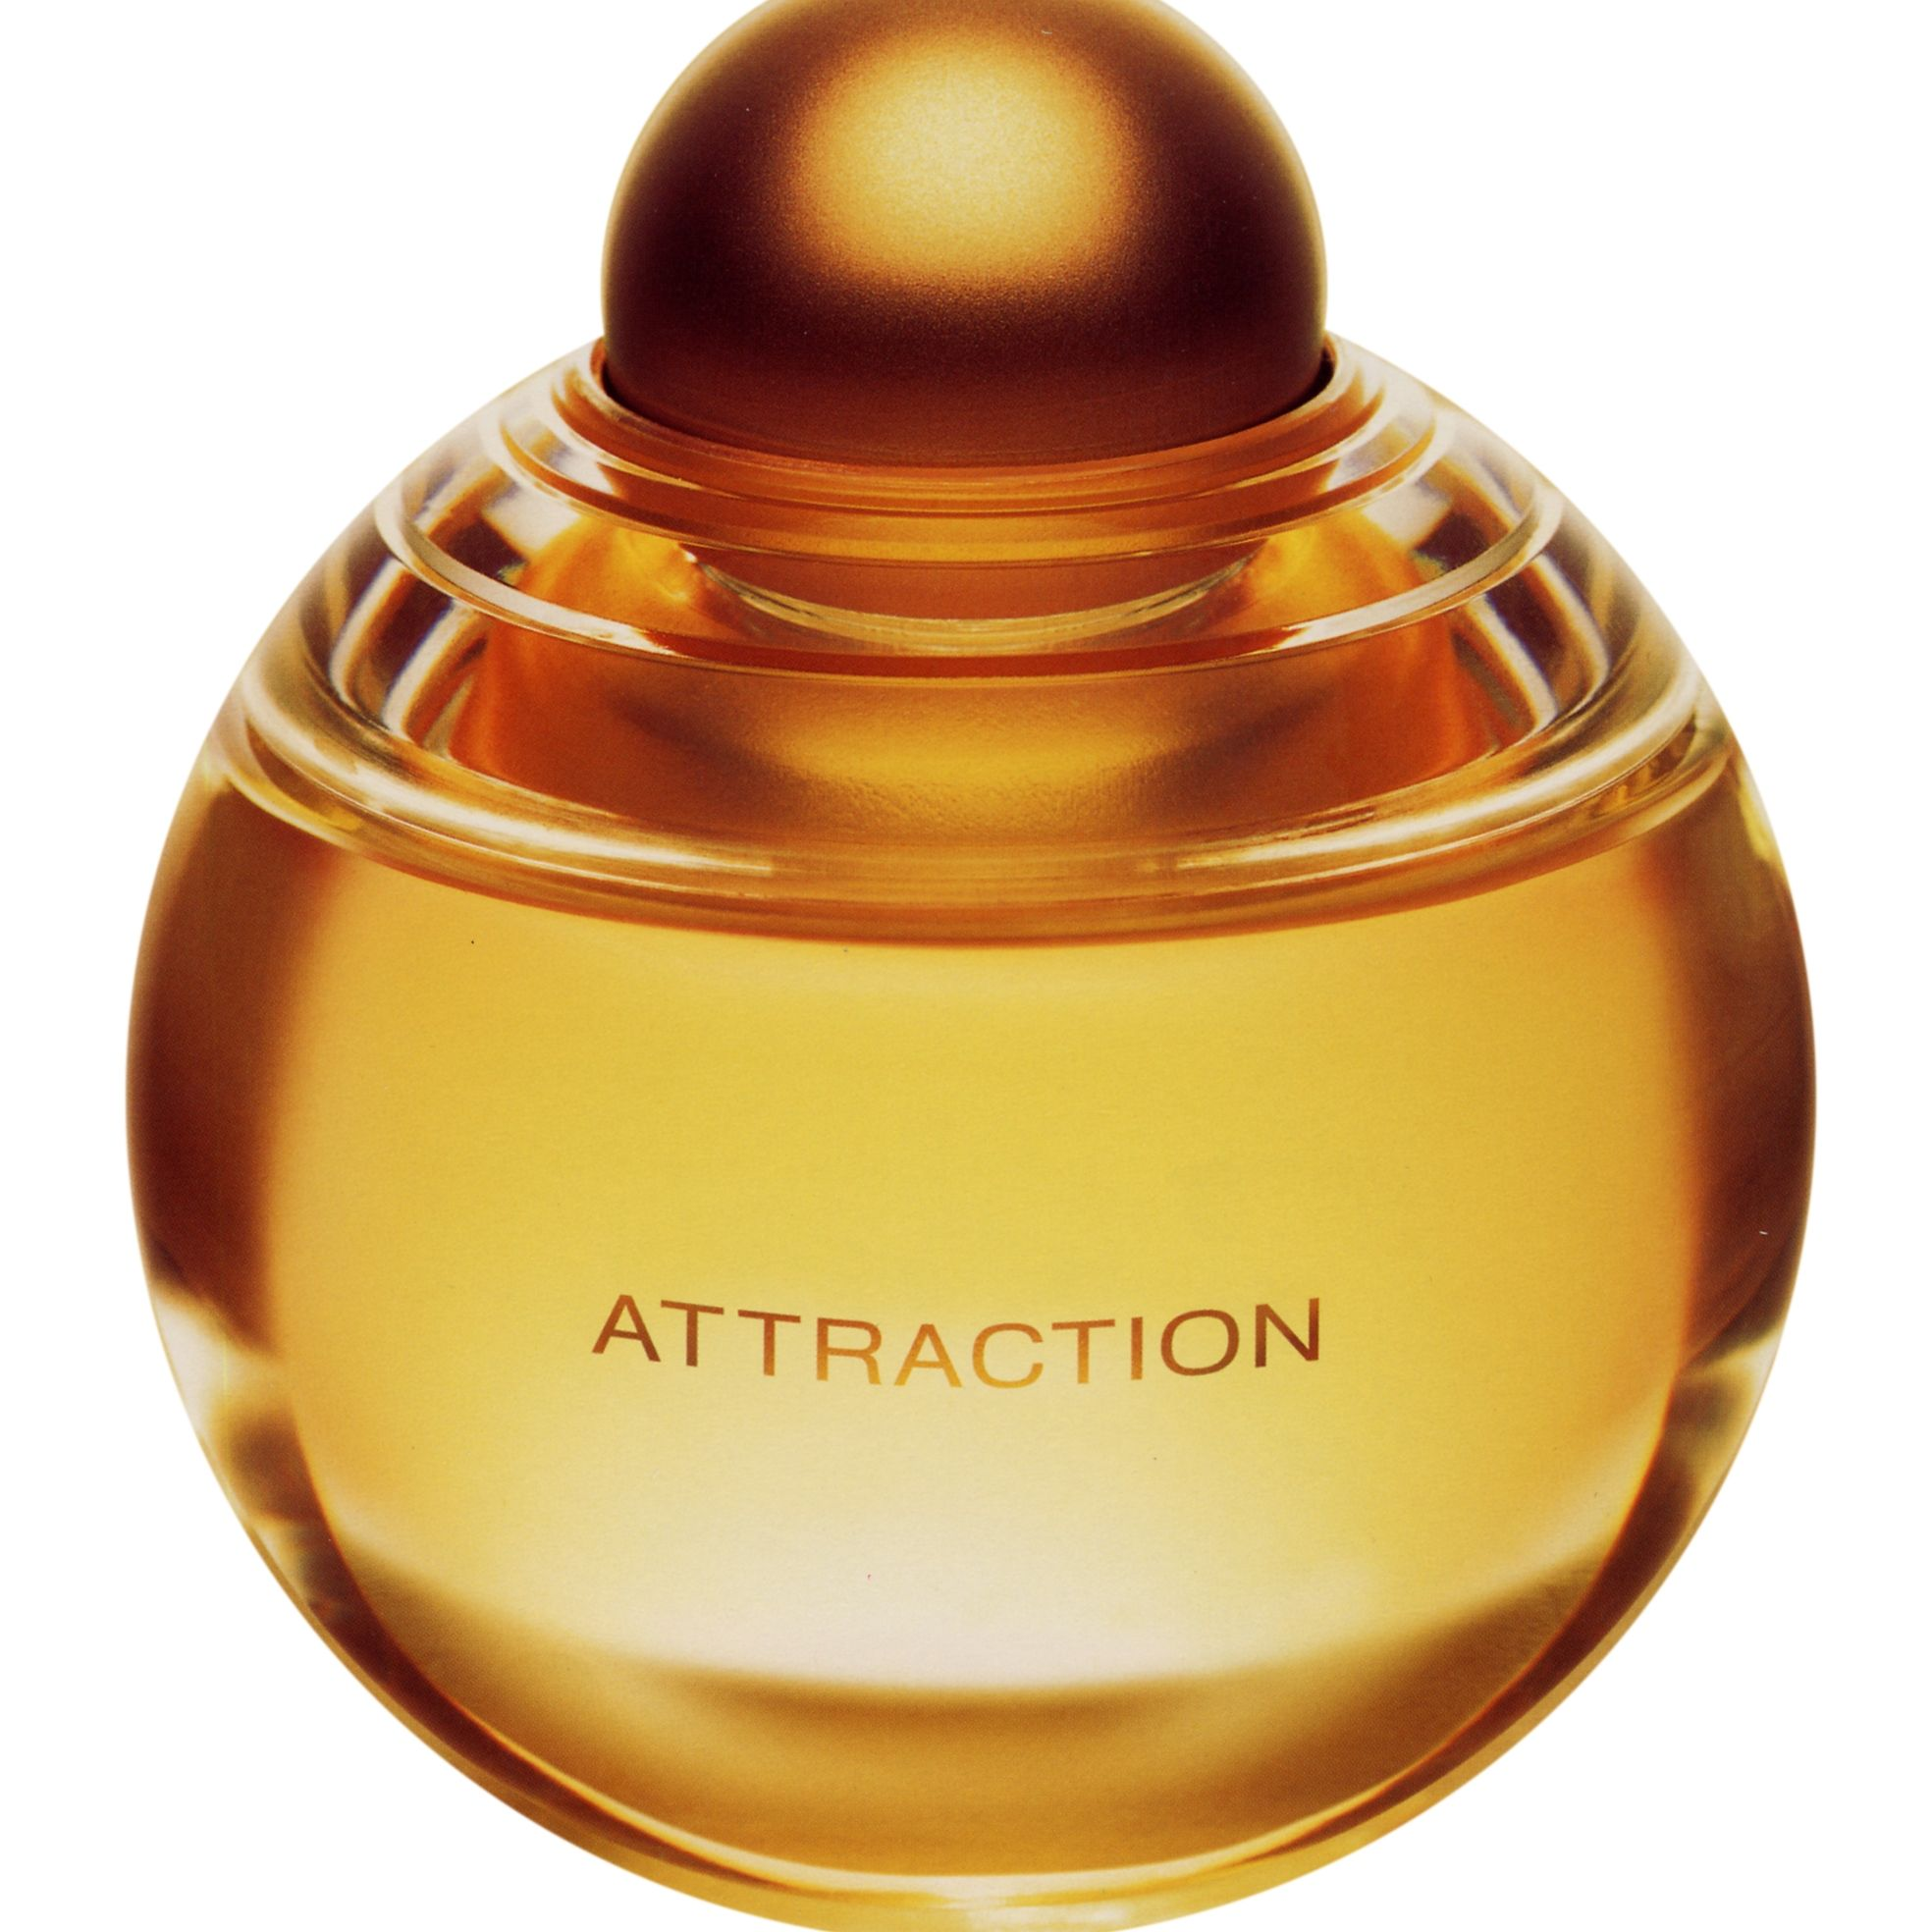 OSMOZ, ATTRACTION Le Parfum's Lancôme | Perfume, Beautiful